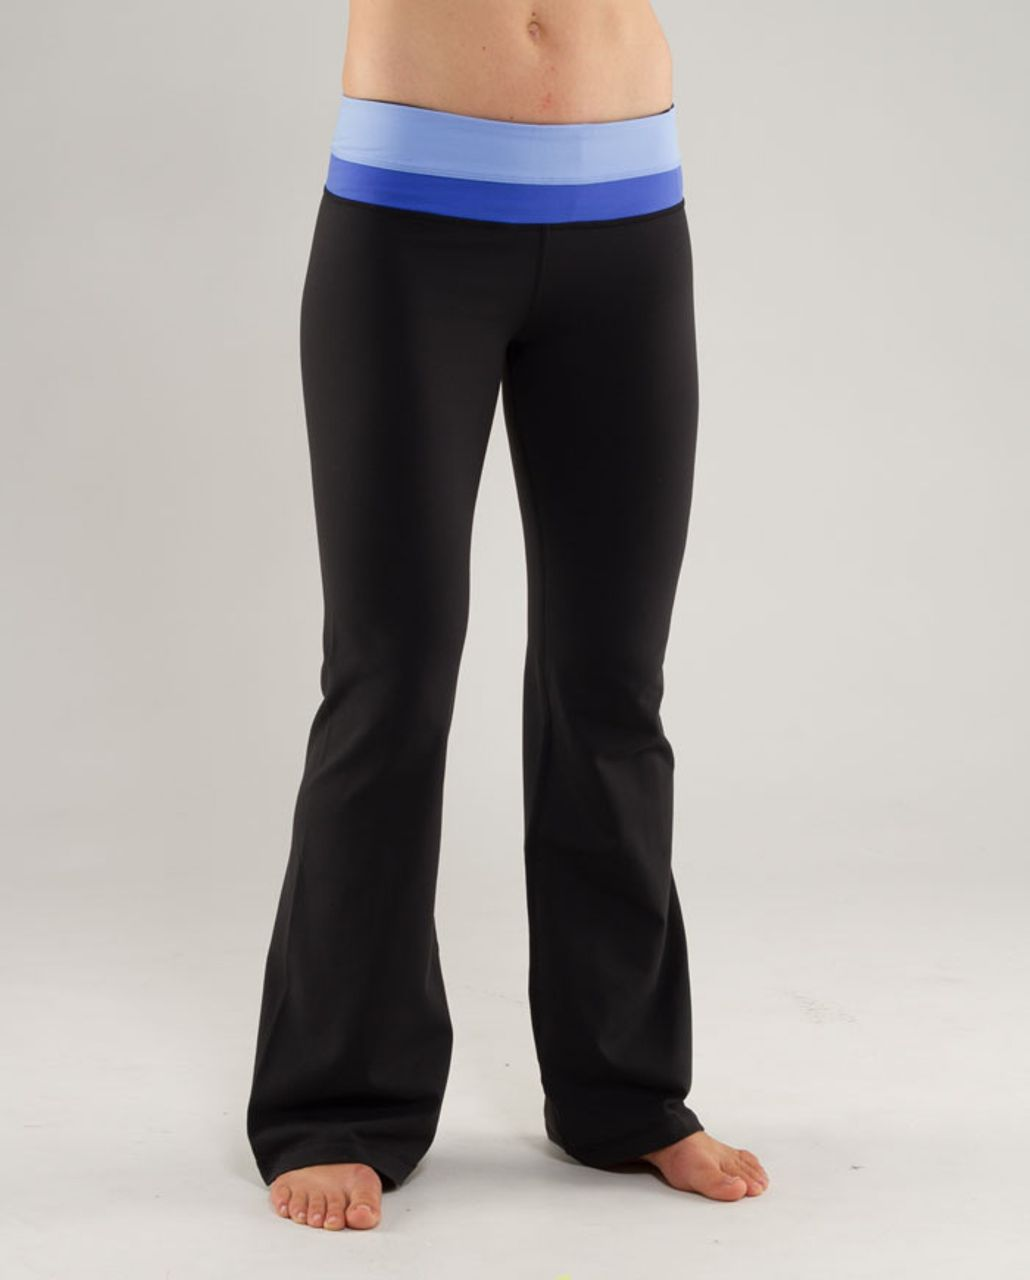 Lululemon Groove Pant (Regular) - Black /  Clear Sky /  Rocksteady